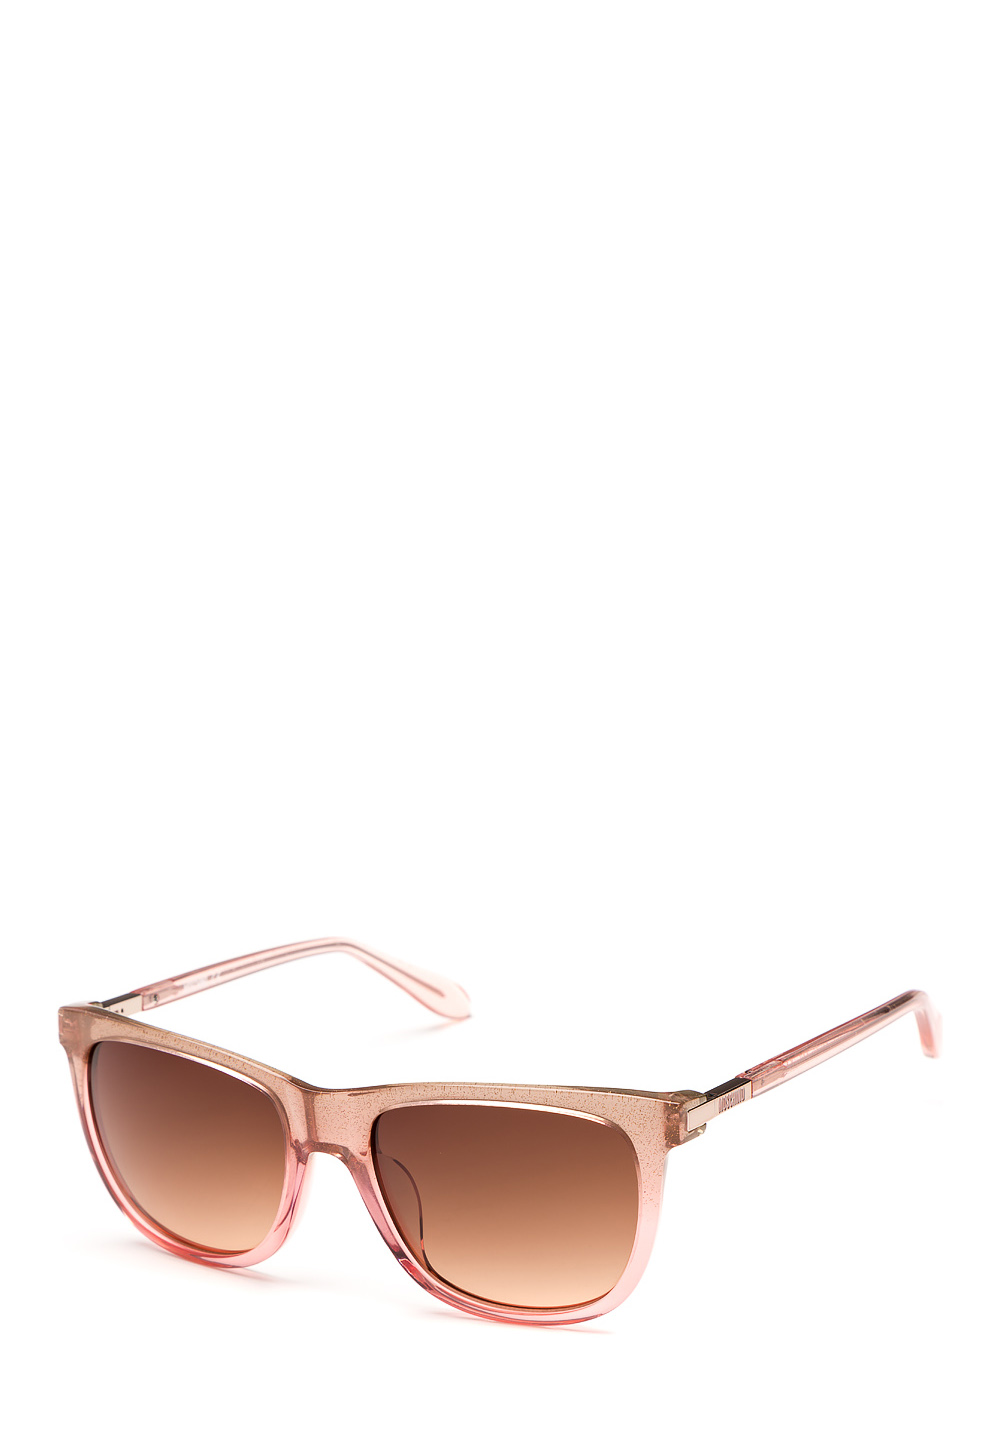 Sonnenbrille, UV 400, rosa/transparent